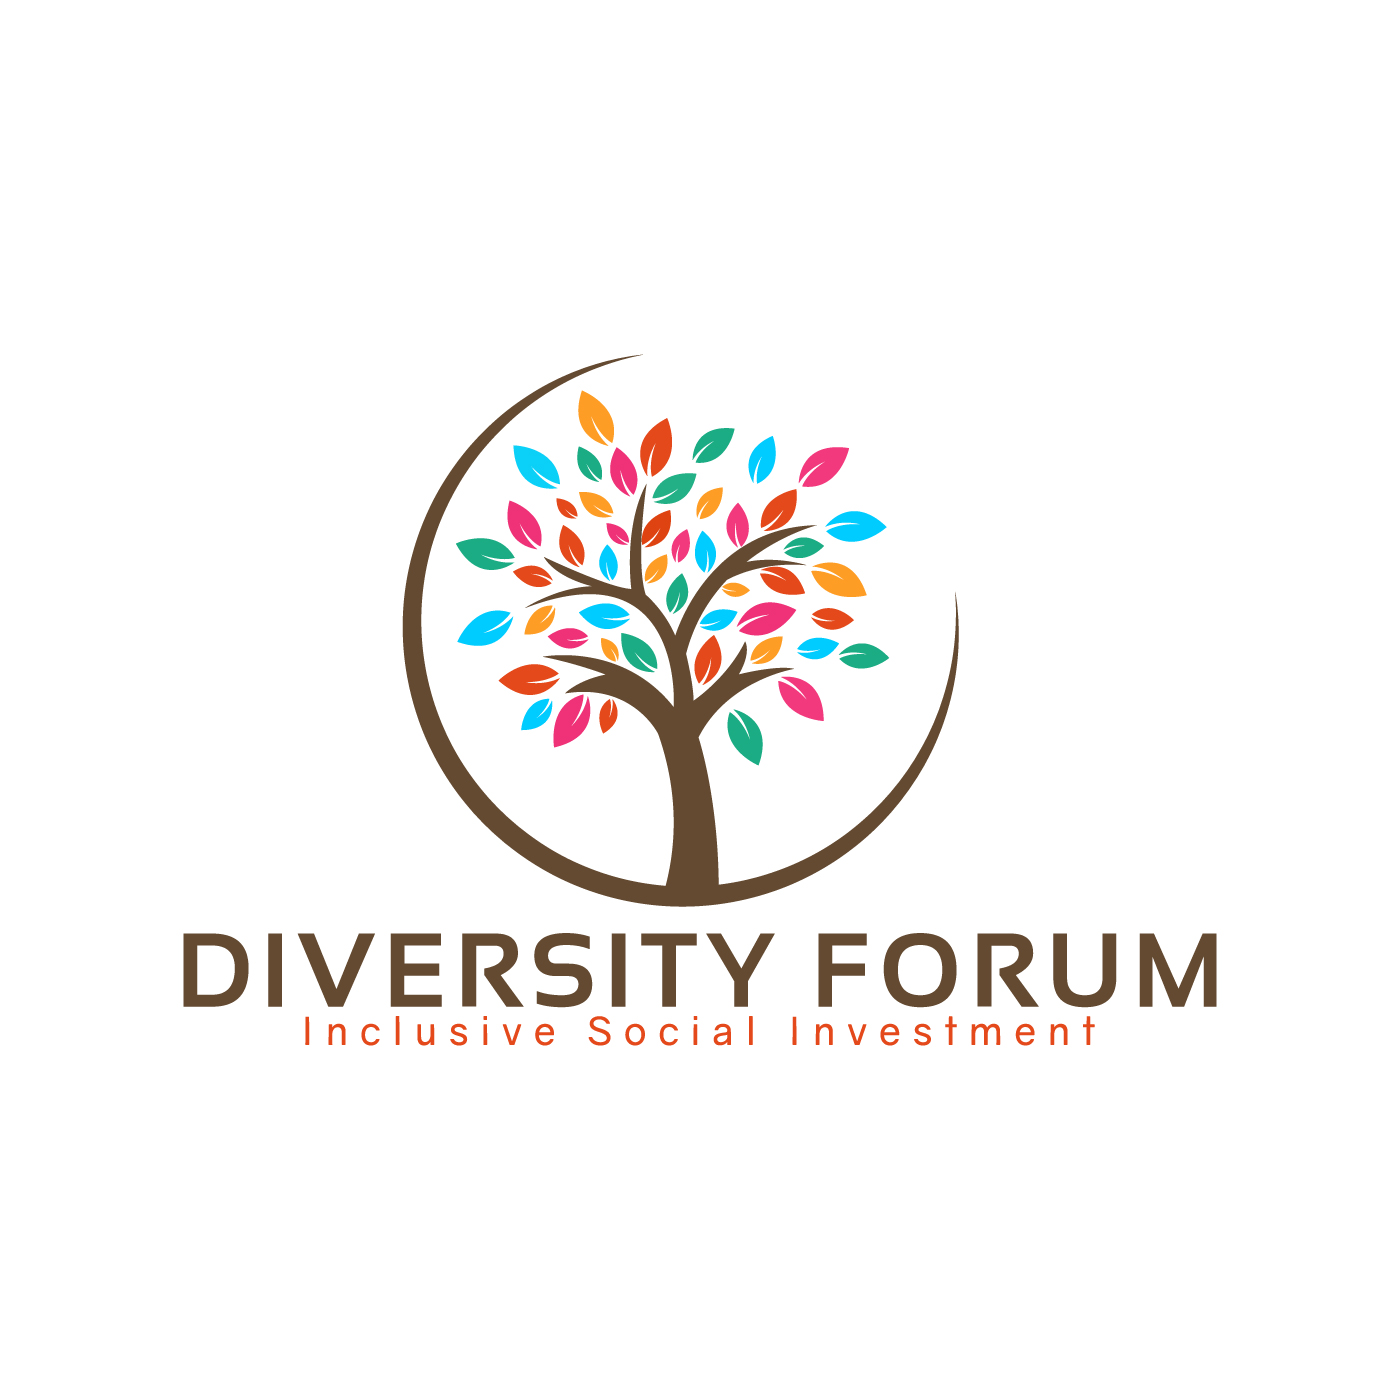 Diversity Forum - Inclusive Social Investment